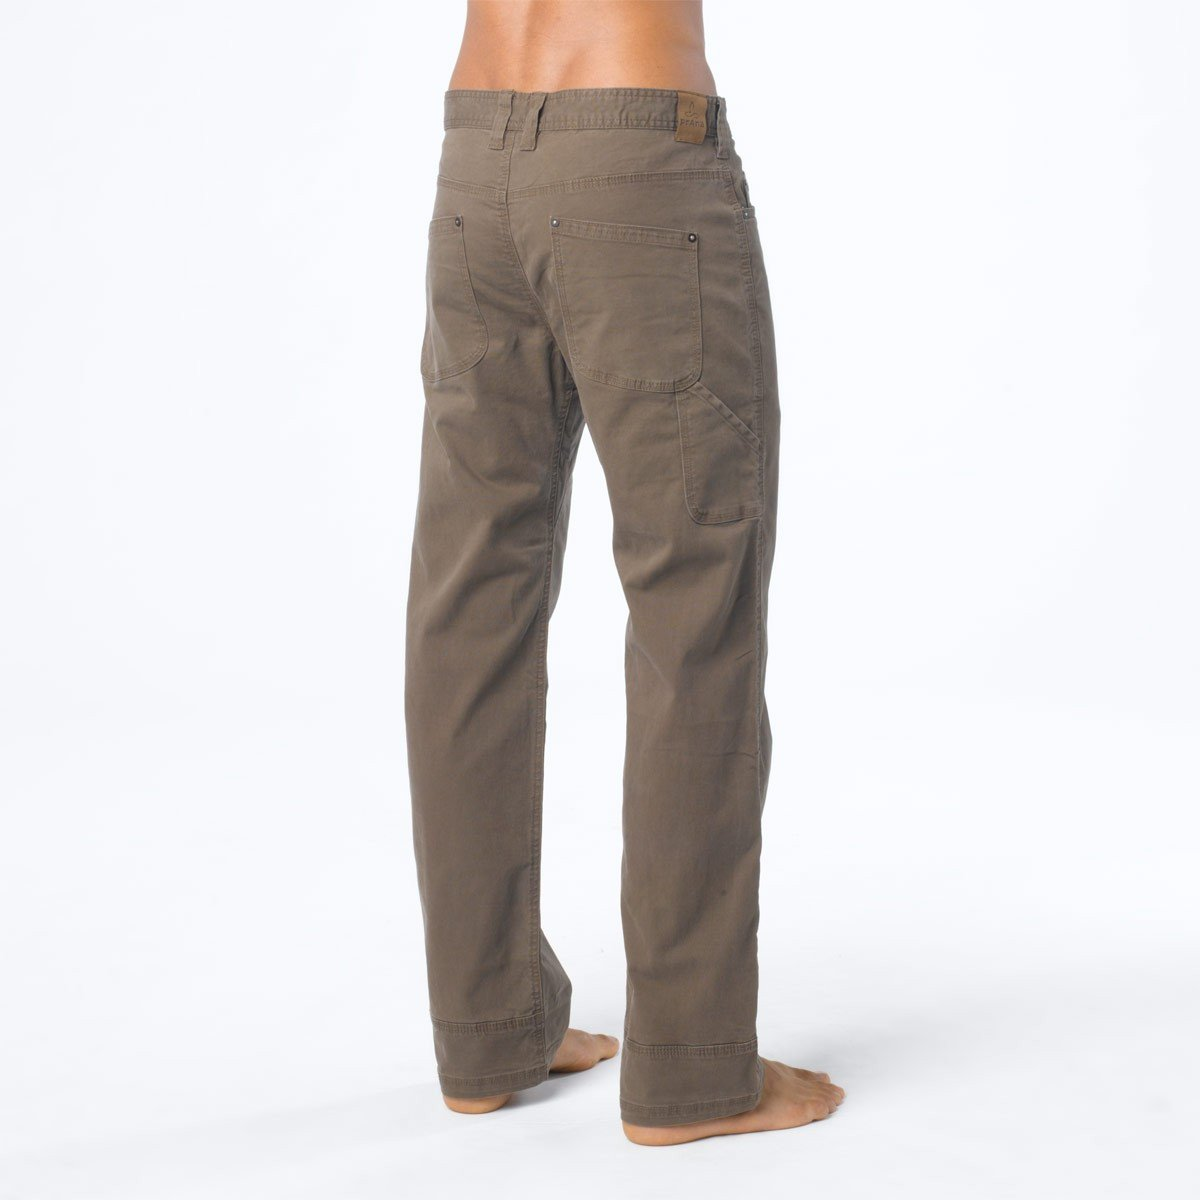 Prana Bronson climbing Pant, in Mud (Back)